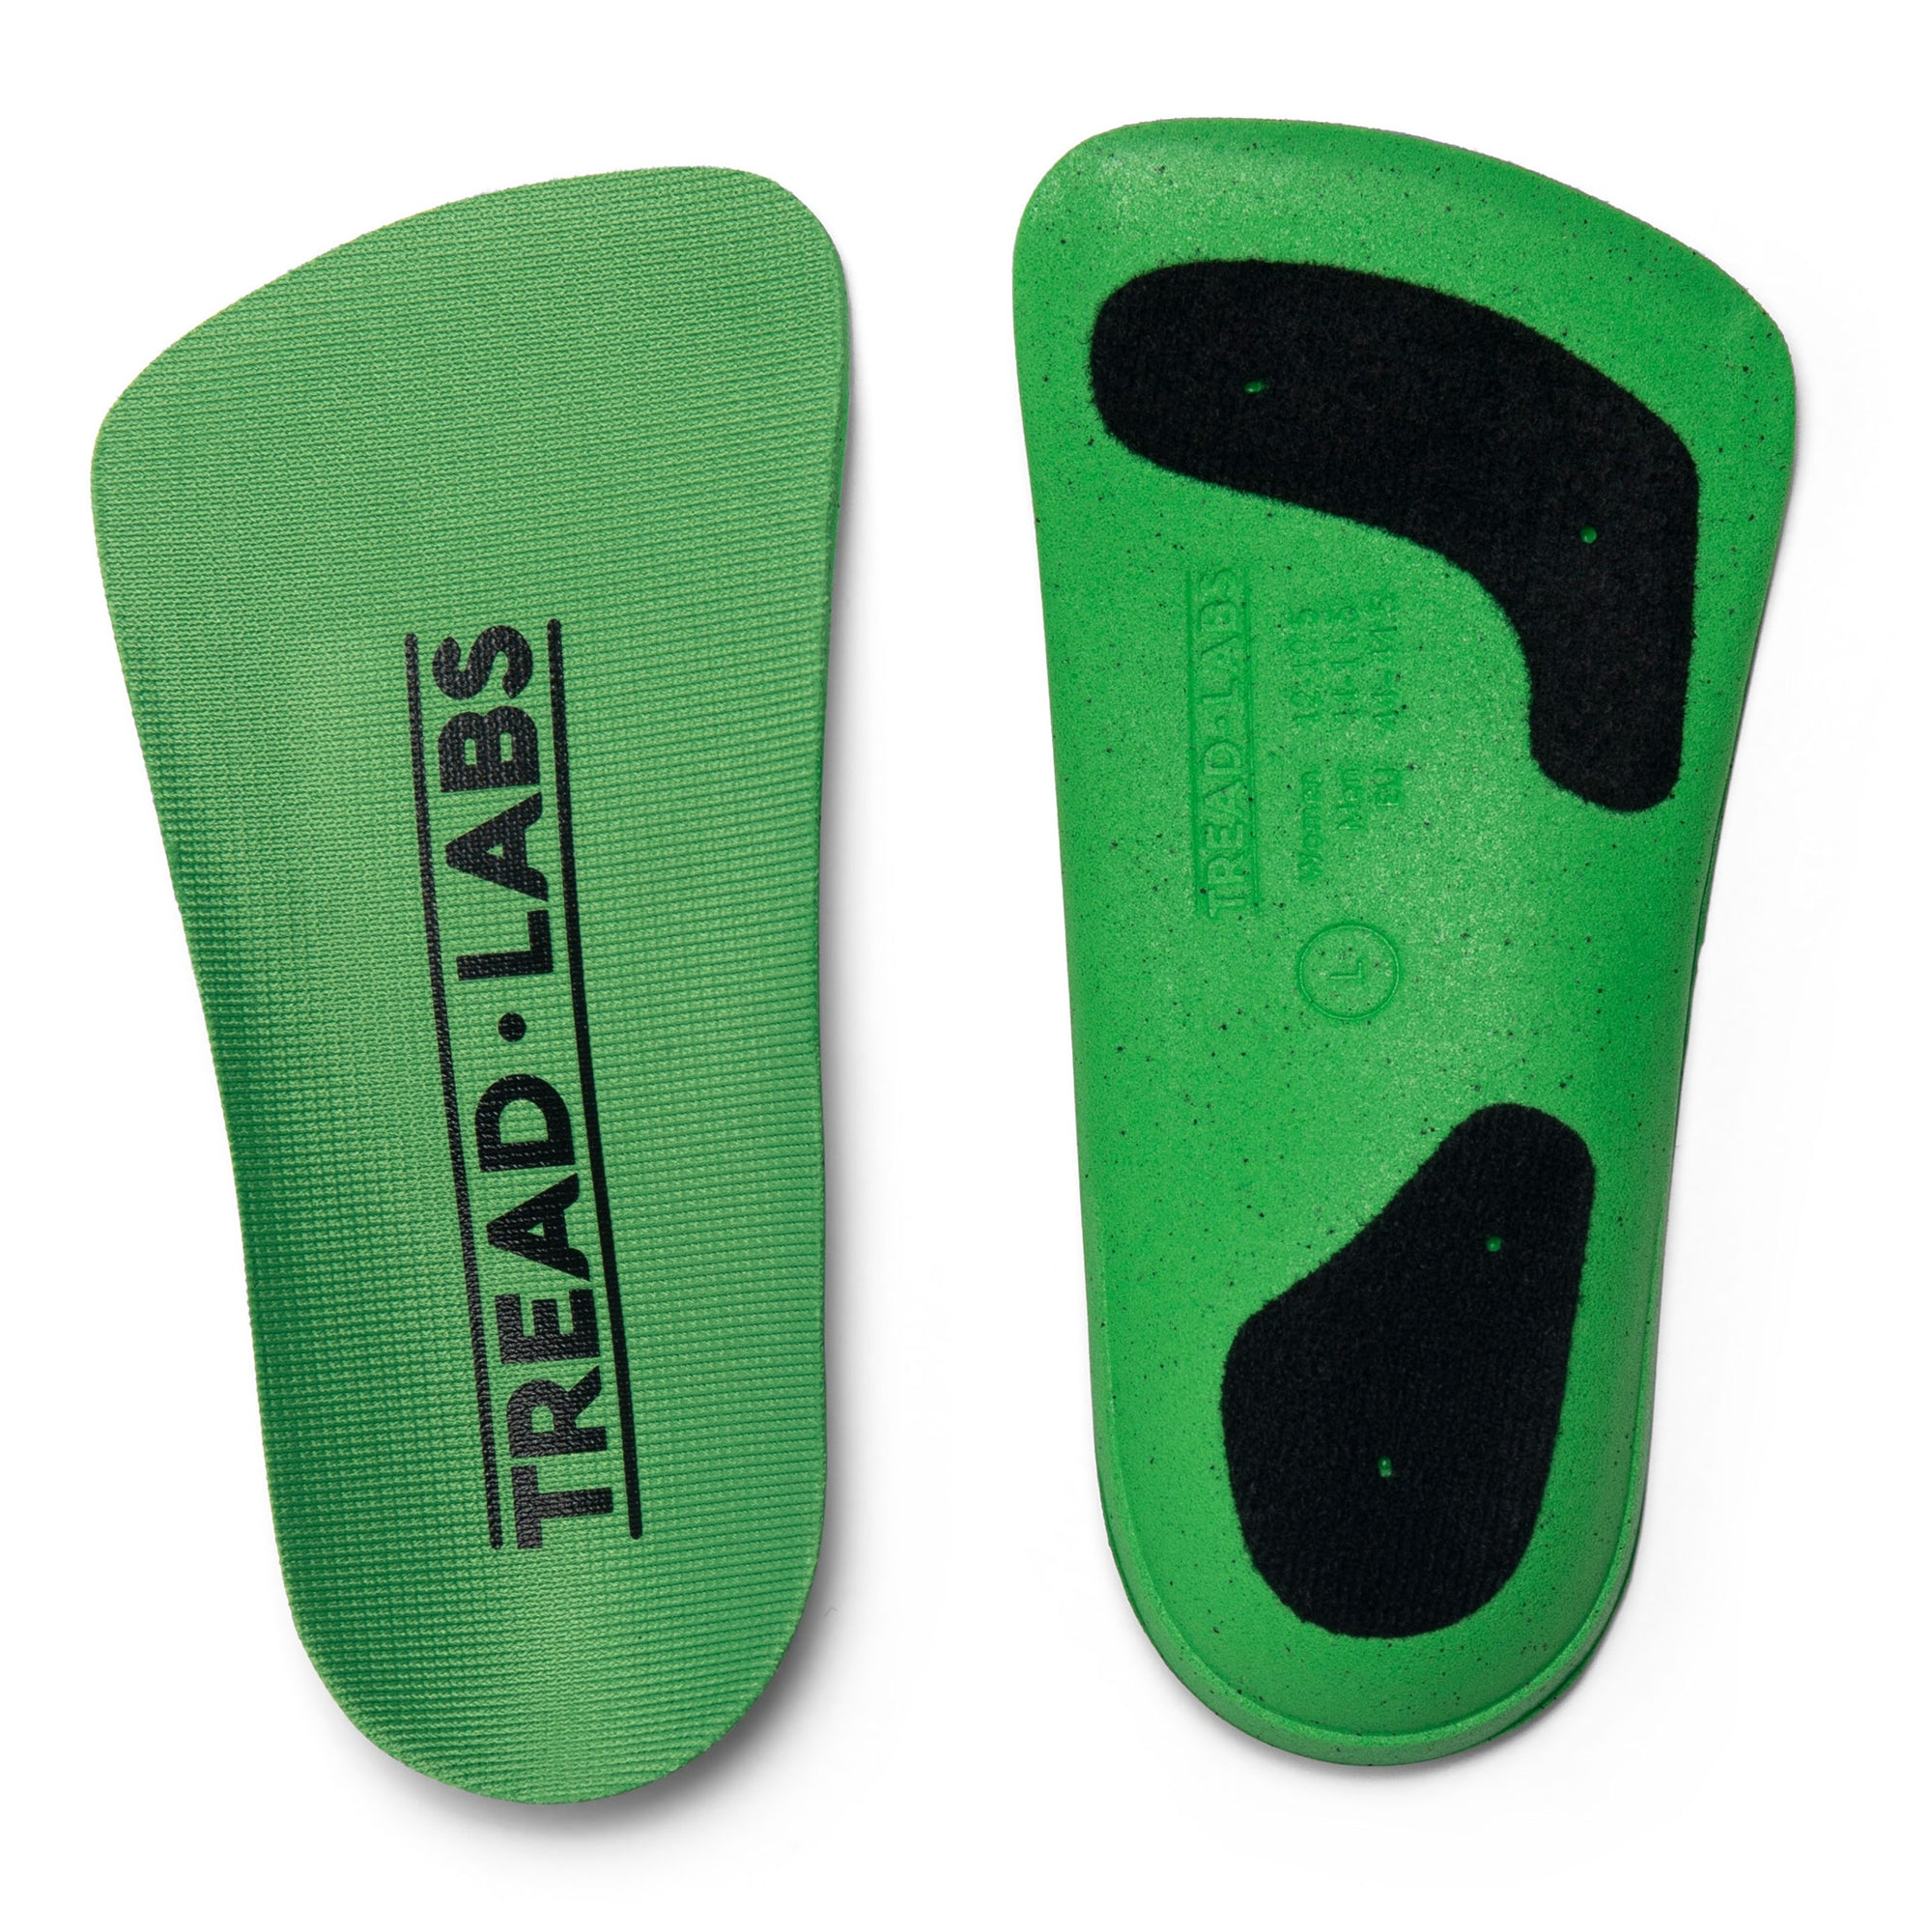 Ramble Short Comfort Insoles Replaceable Top Cover From Tread Labs